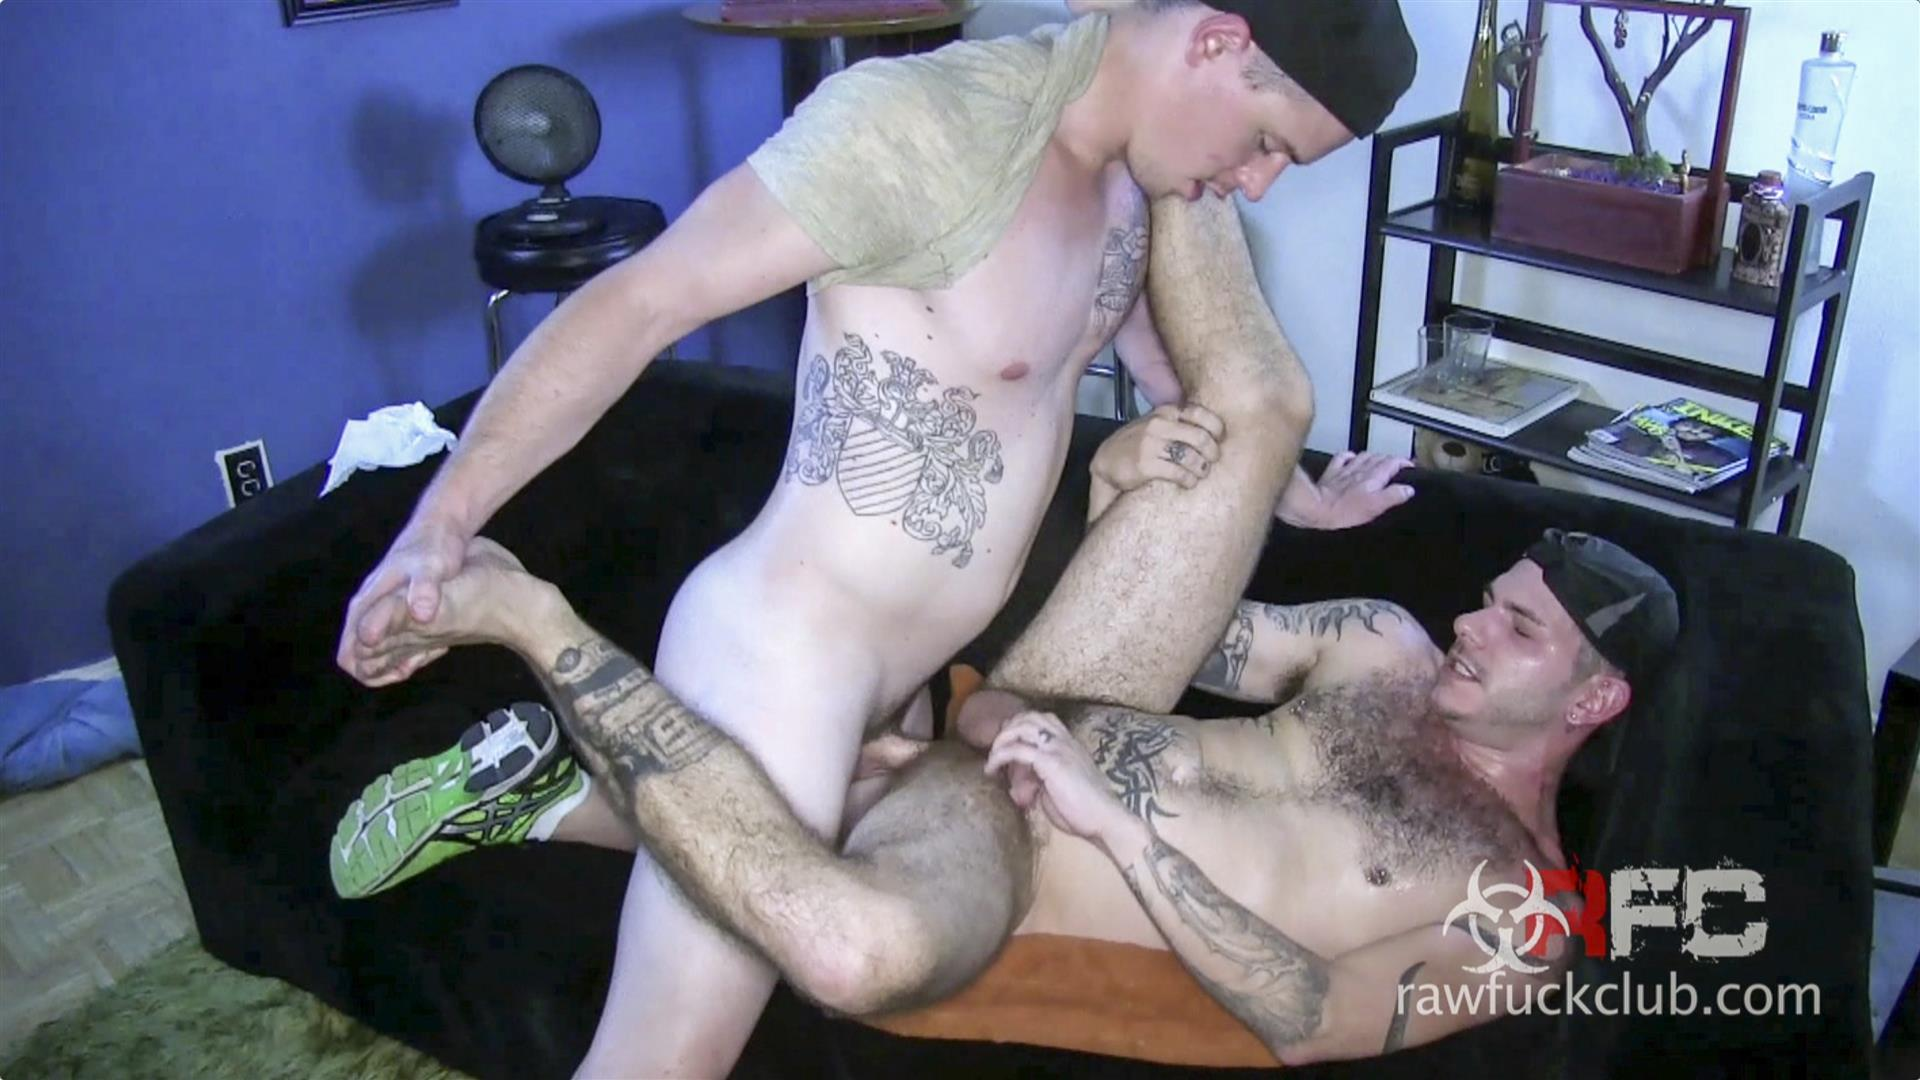 Raw Fuck Club Alessio Ribiero Hairy Ass Bareback Fuck Amateur Gay Porn 12 Picking Up A Drunk Trick At The Club And Fucking Him Raw